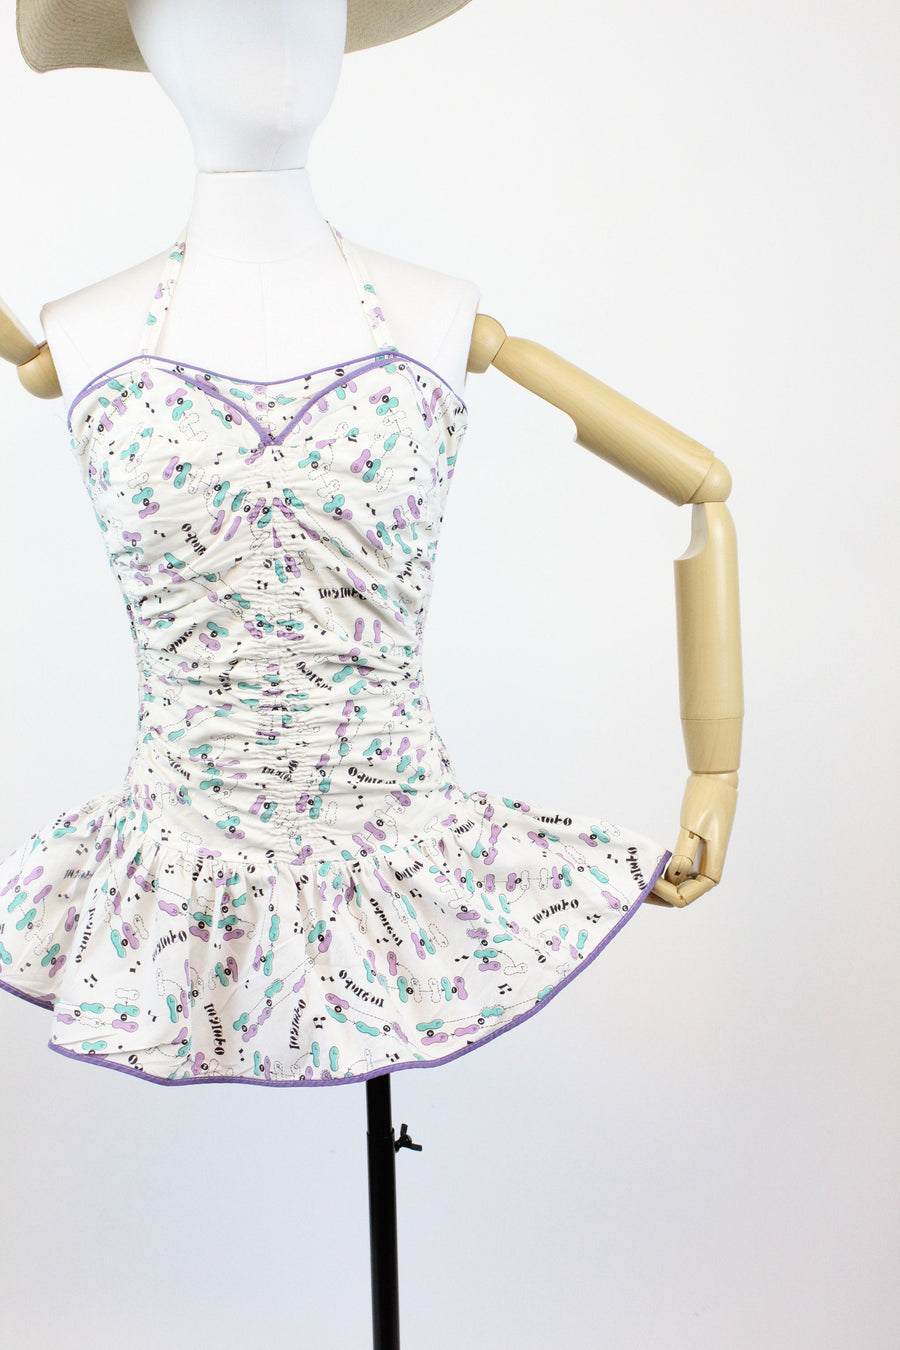 1950s novelty print swimsuit | vintage mambo steps cotton romper